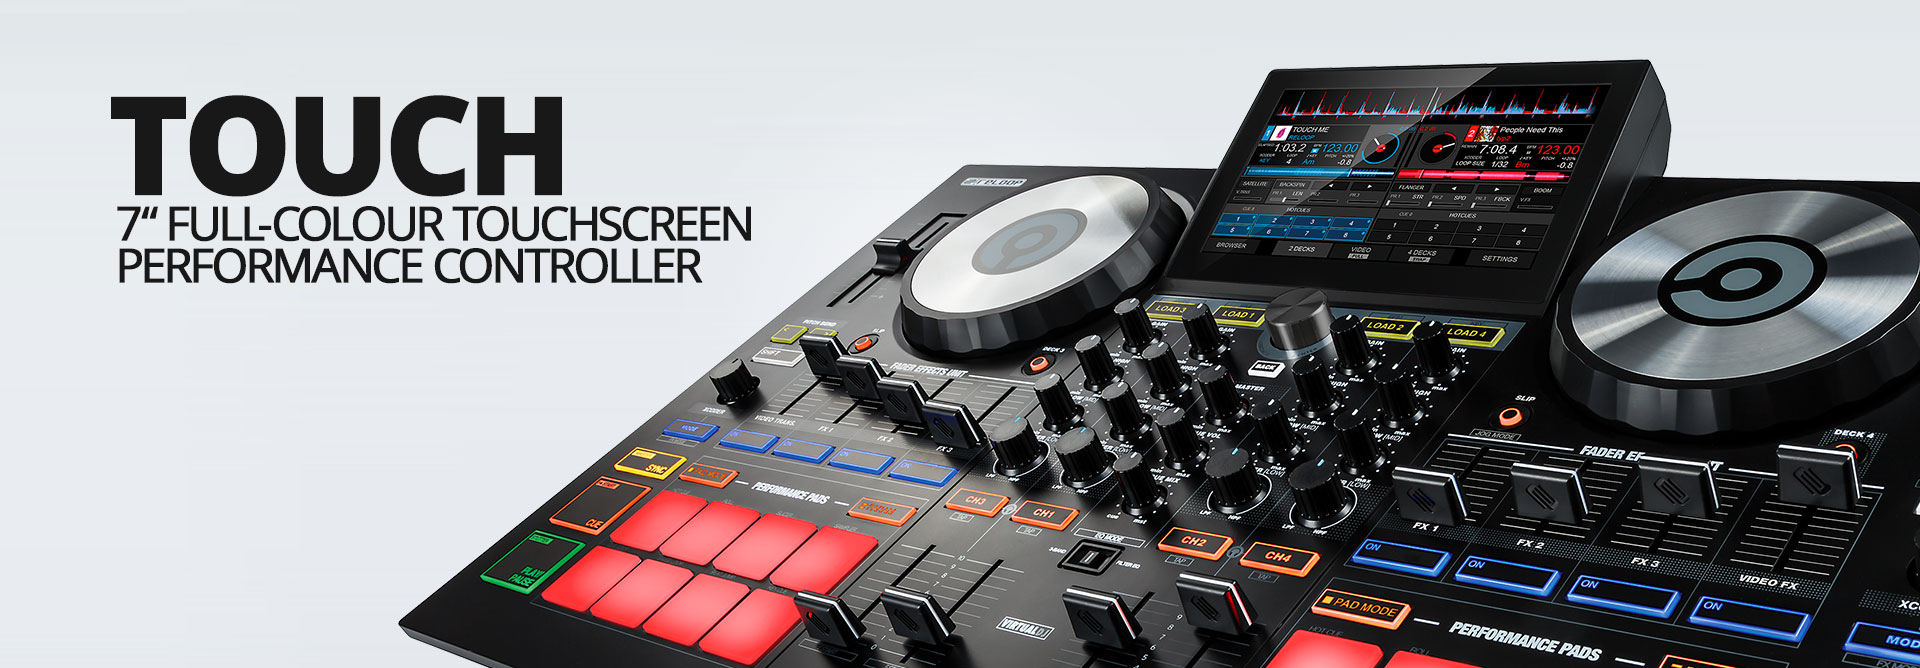 Reloop TOUCH - Header Image